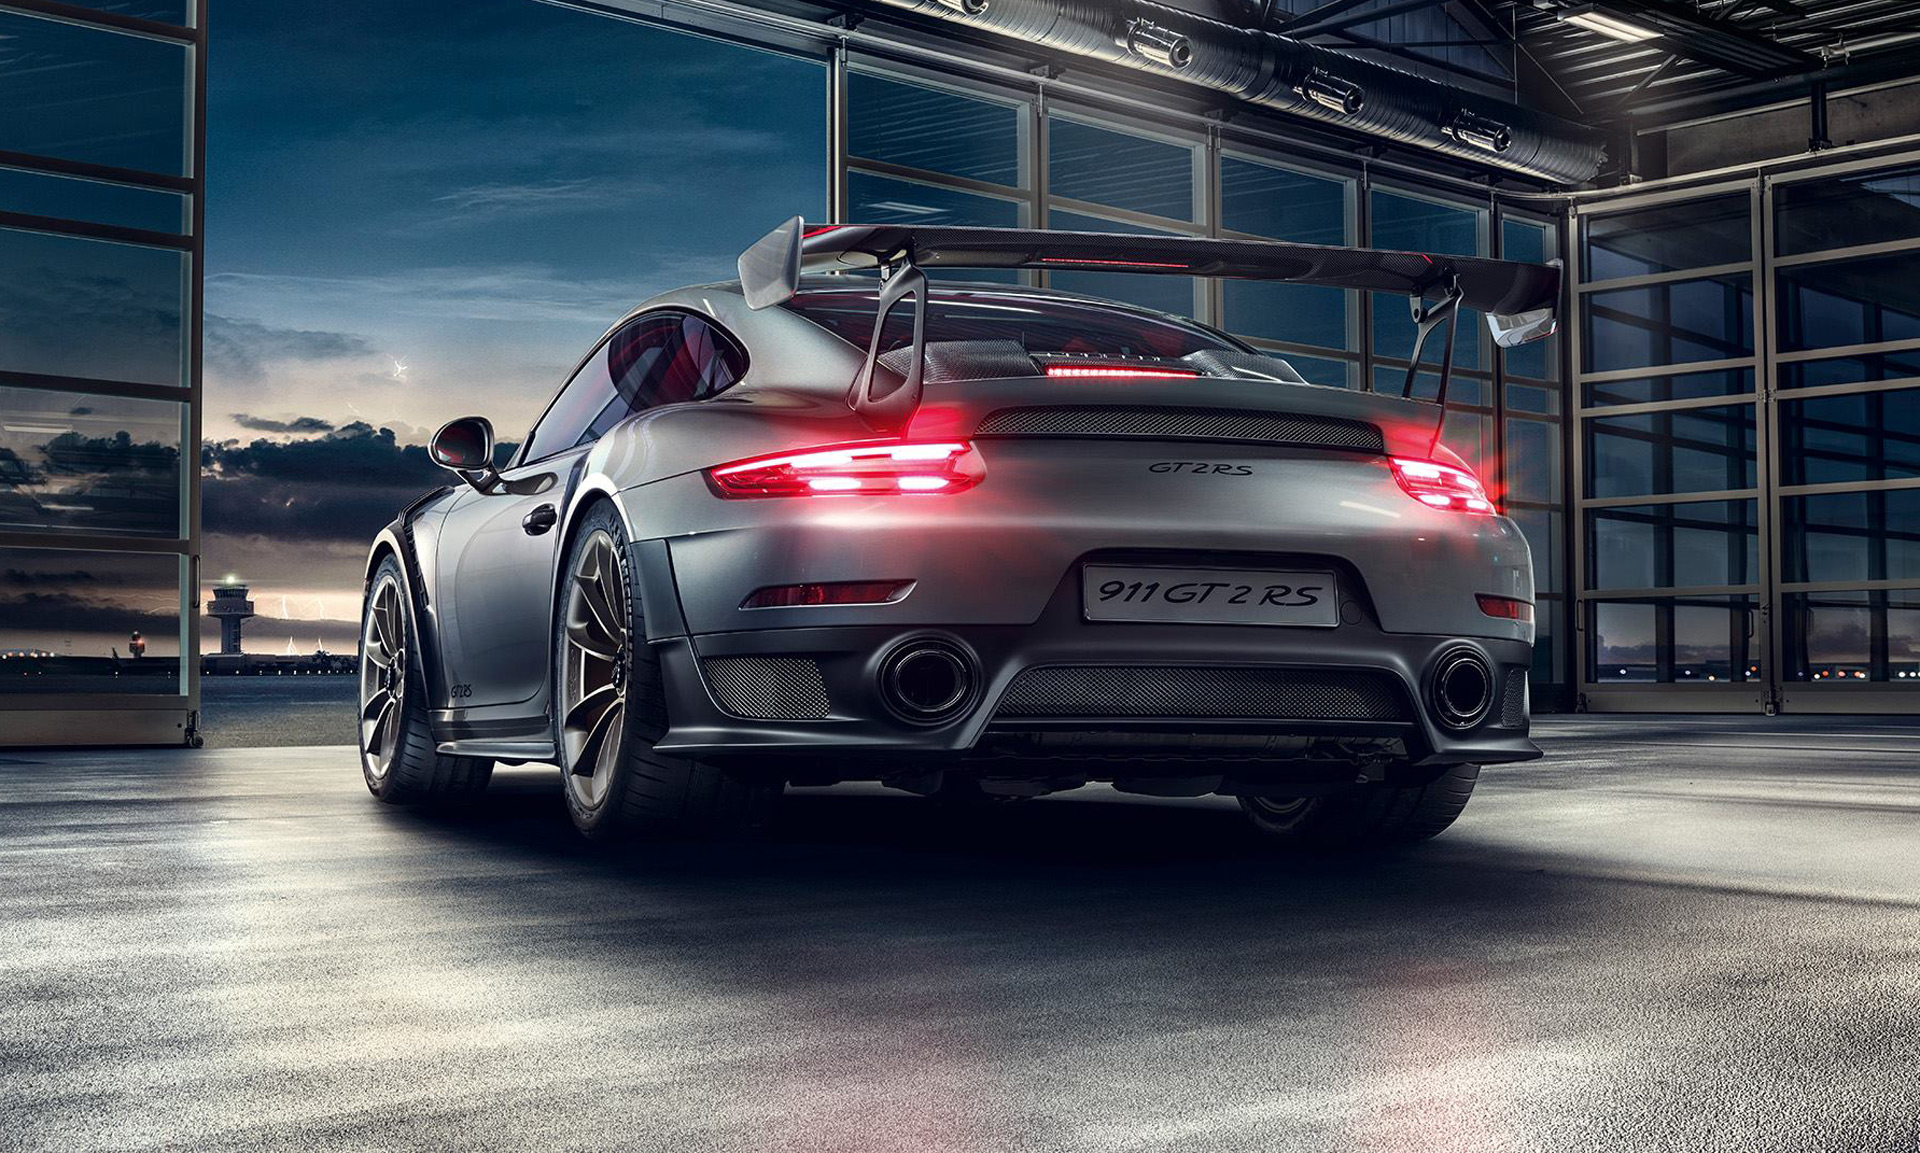 Is The 2018 Porsche 911 Gt2 Rs Still A Quot Widowmaker Quot